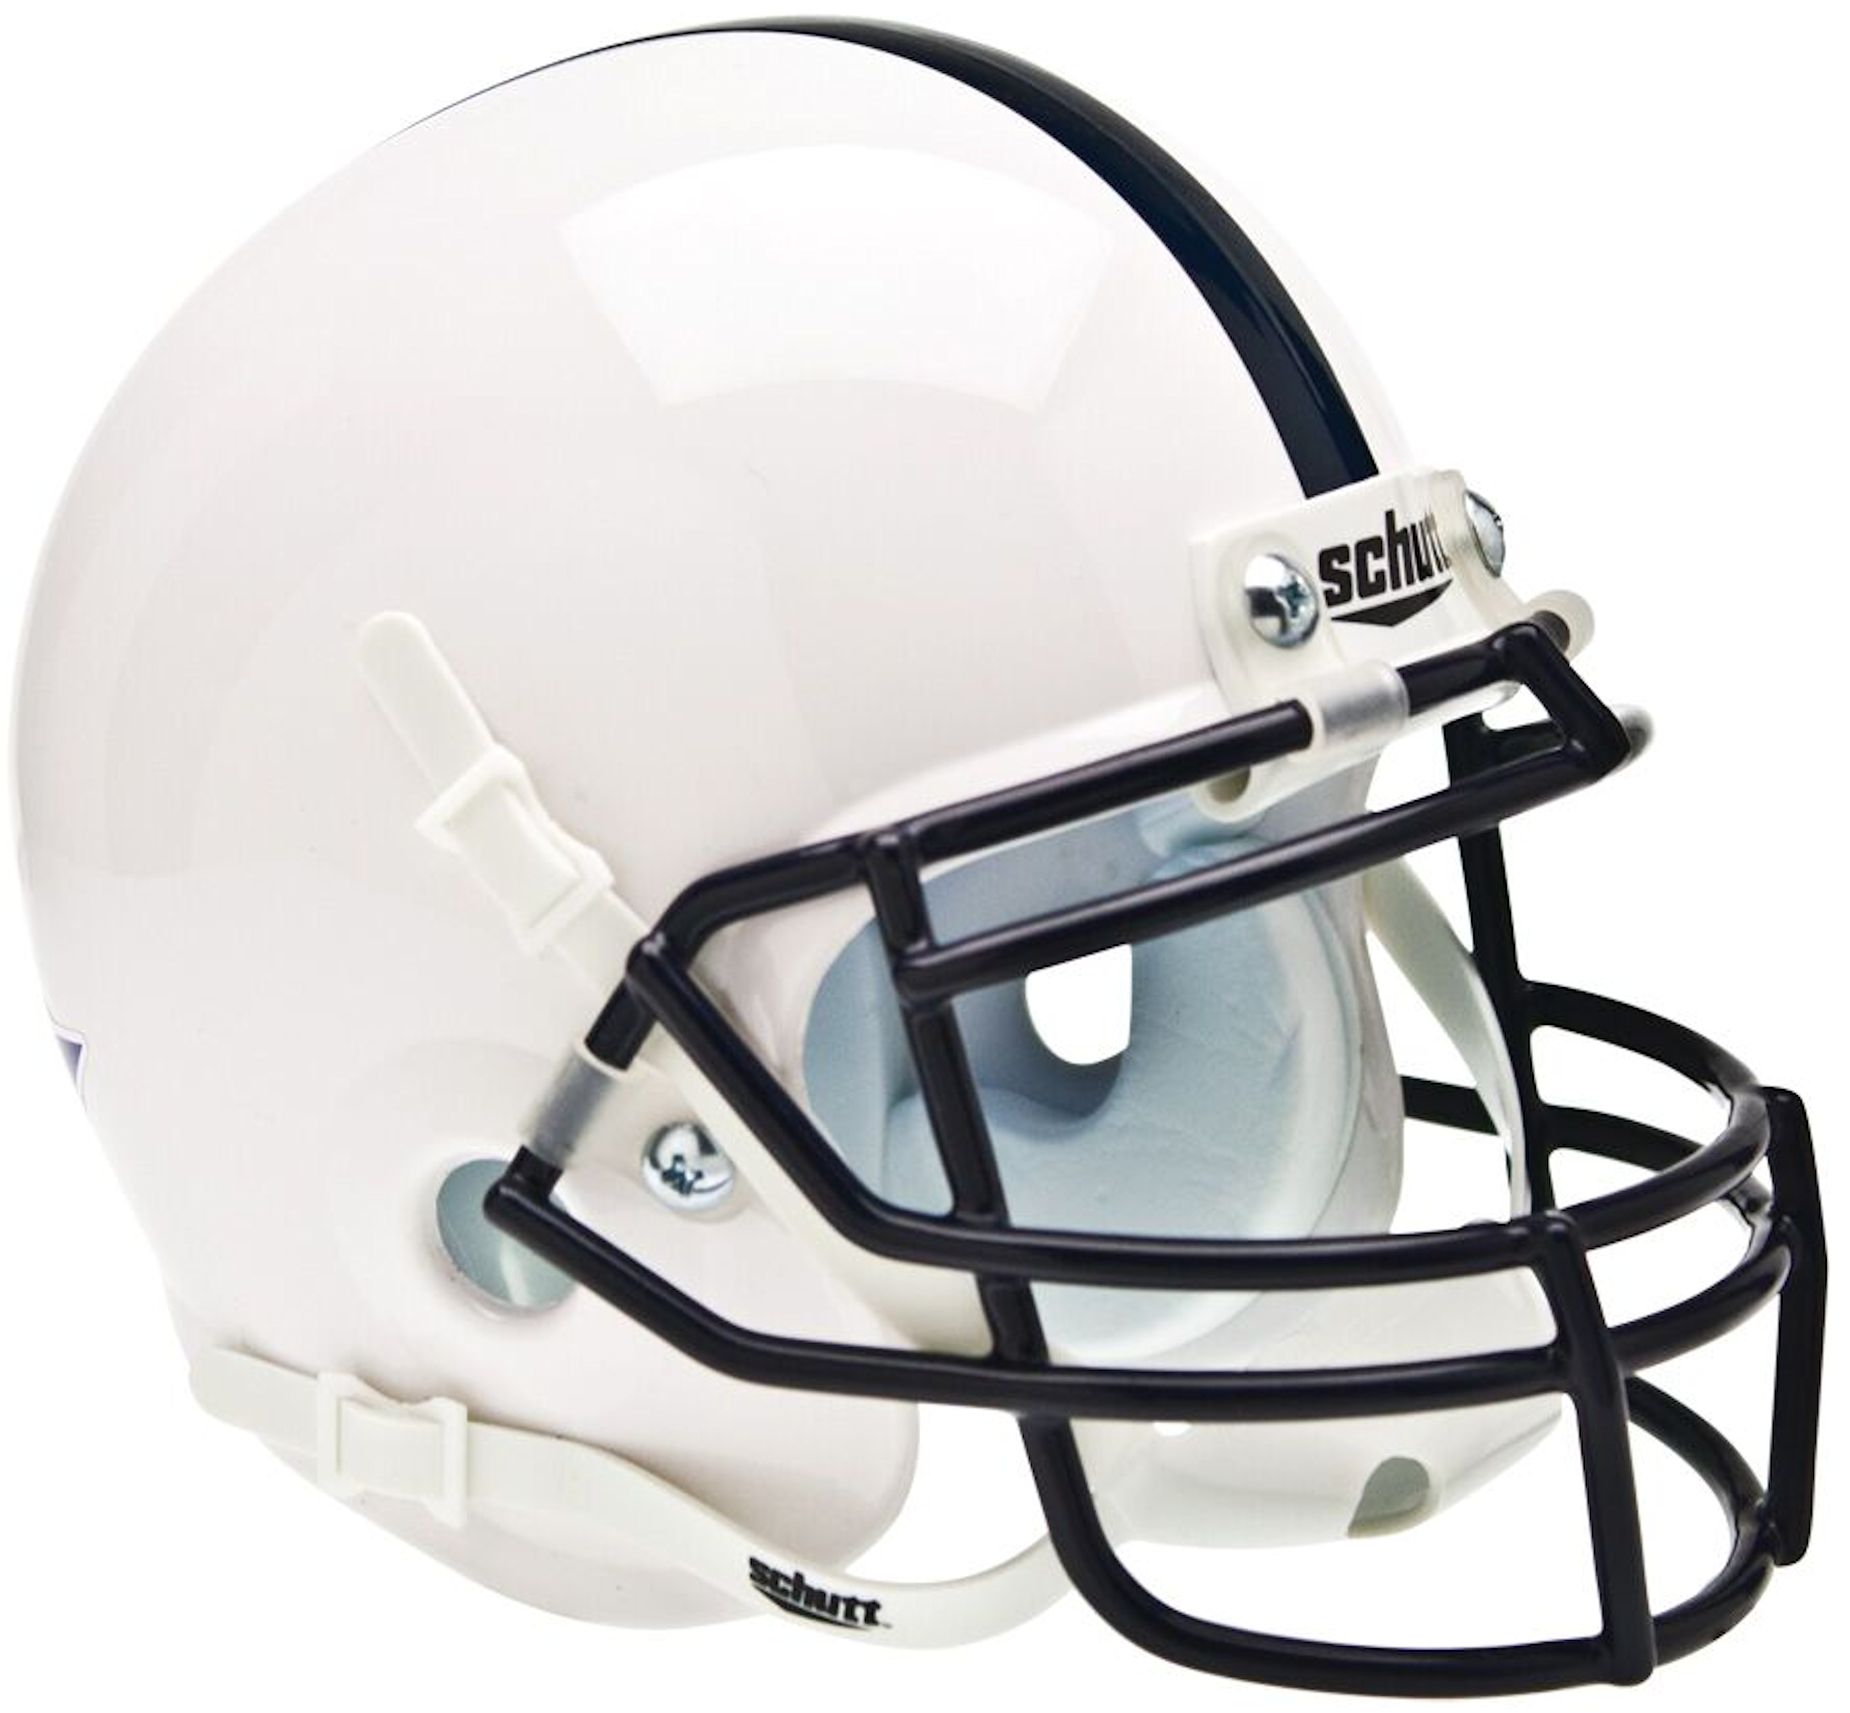 Penn State Nittany Lions Mini XP Authentic Helmet Schutt